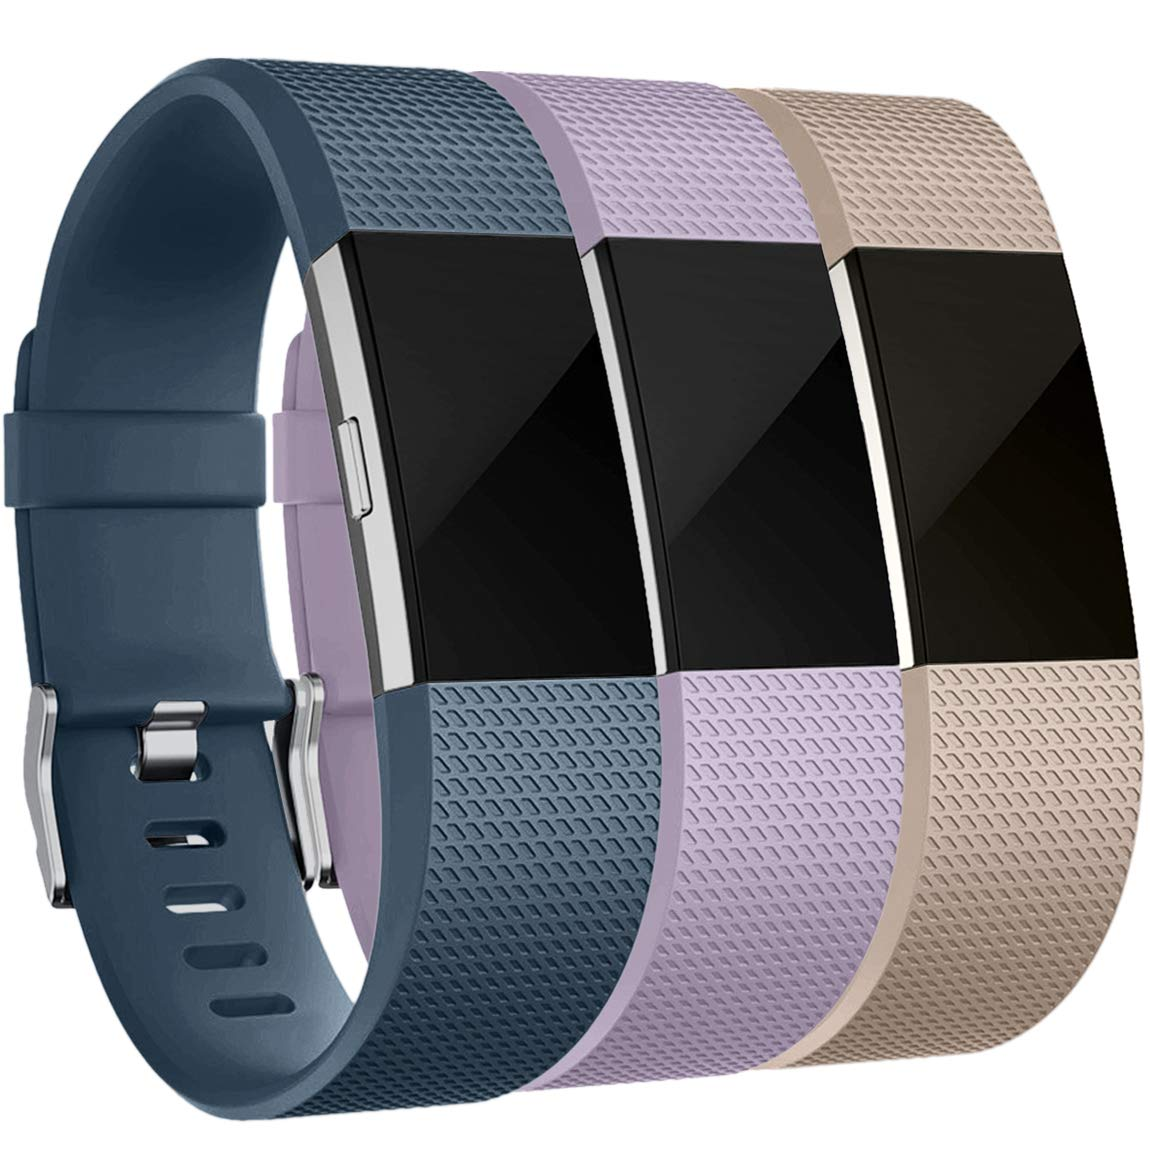 Maledan Bands Replacement Compatible with Fitbit Charge 2, 3-Pack, Small Slate Blue/Lavender/Beige